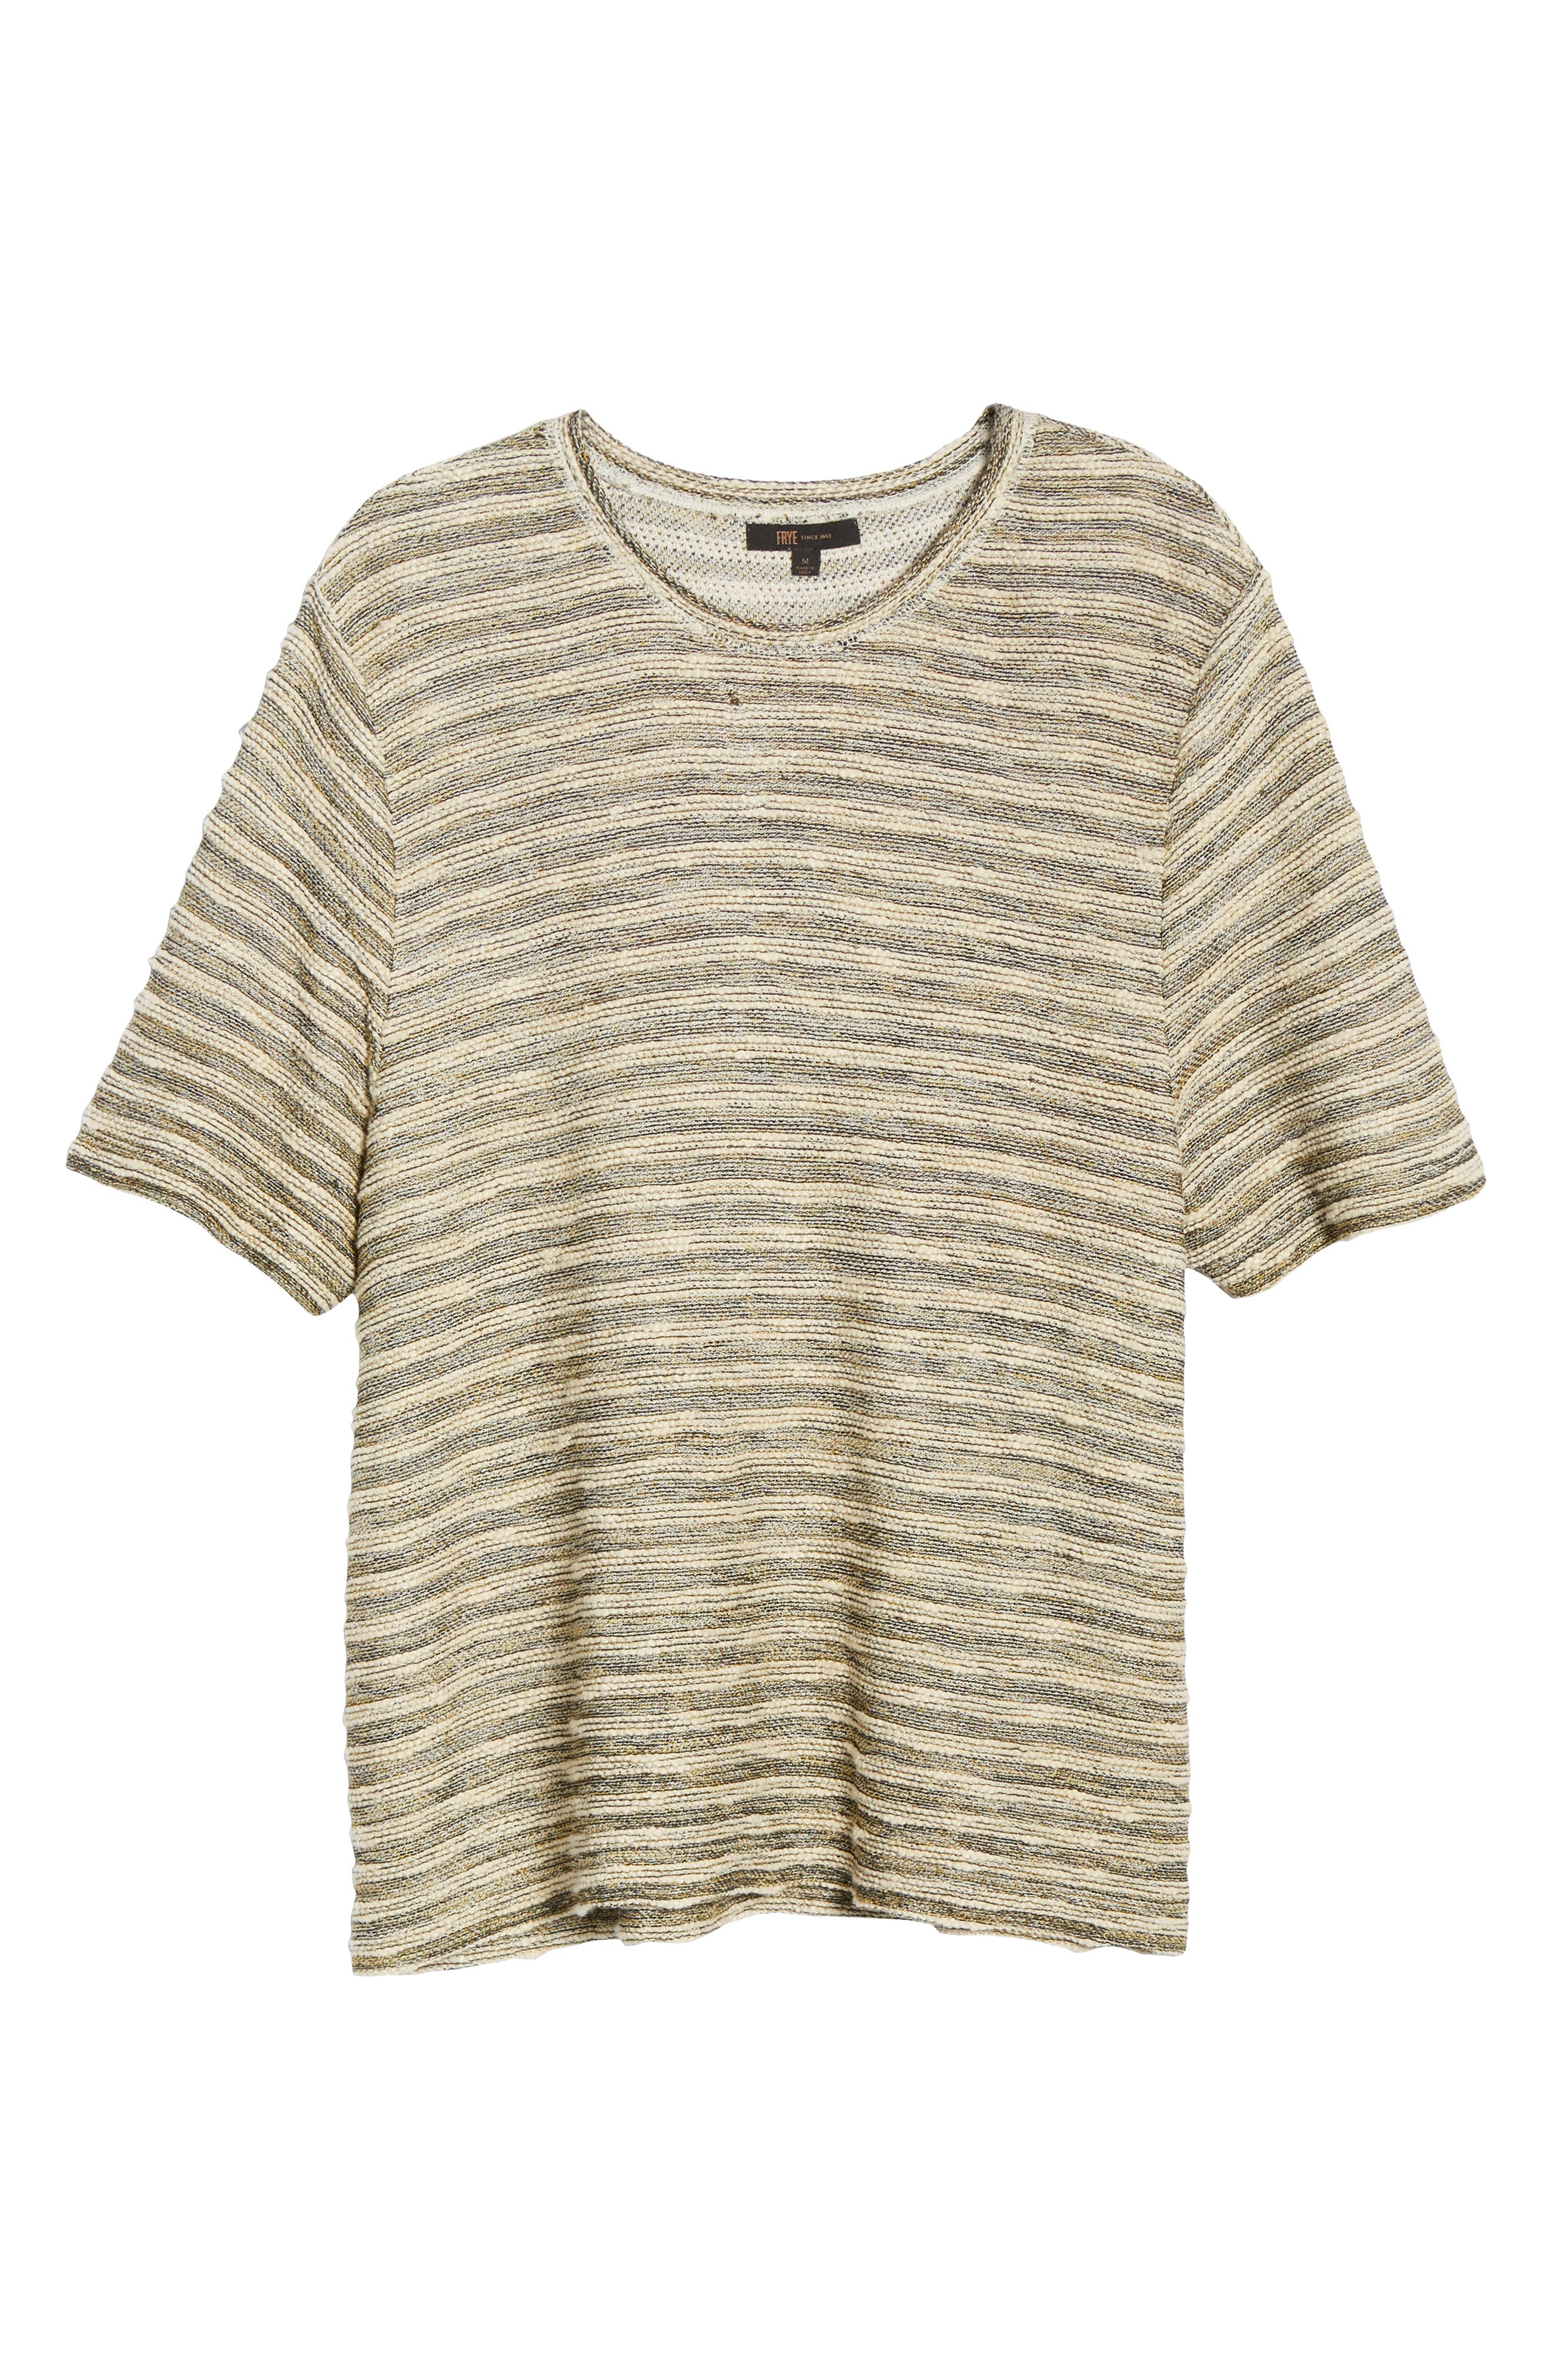 FRYE, Stripe Jacquard Regular Fit T-Shirt, Alternate thumbnail 6, color, WHITE